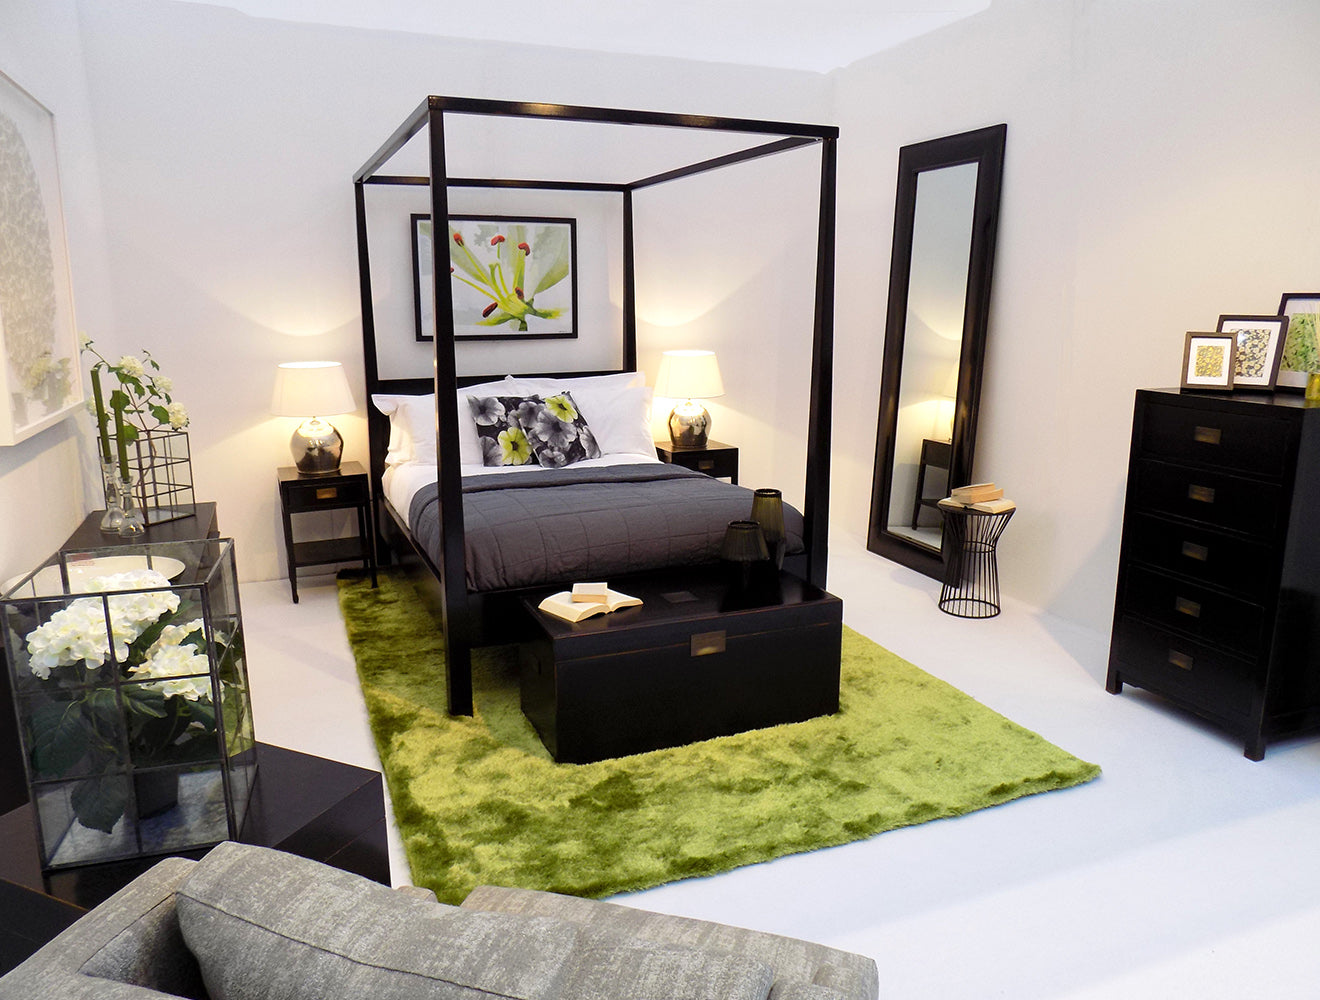 Summer bedroom interior design with Lombok four poster bed, large black mirror and green rug